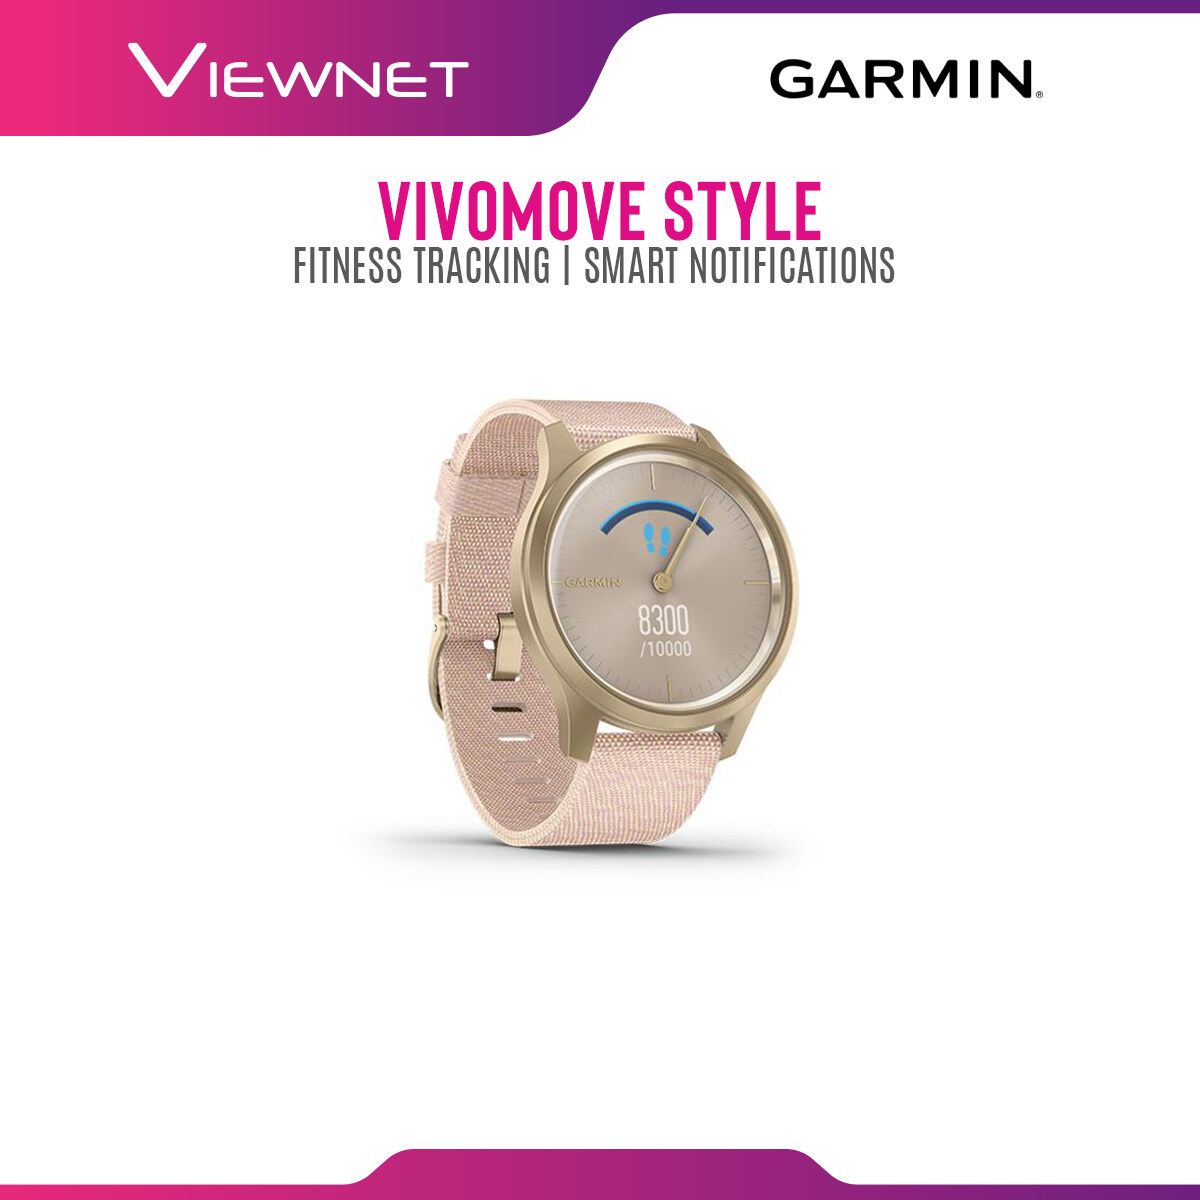 (NEW 2019) Garmin Vivomove Style GPS Smartwatch with smart notifications, hidden display, & Fitness tracking